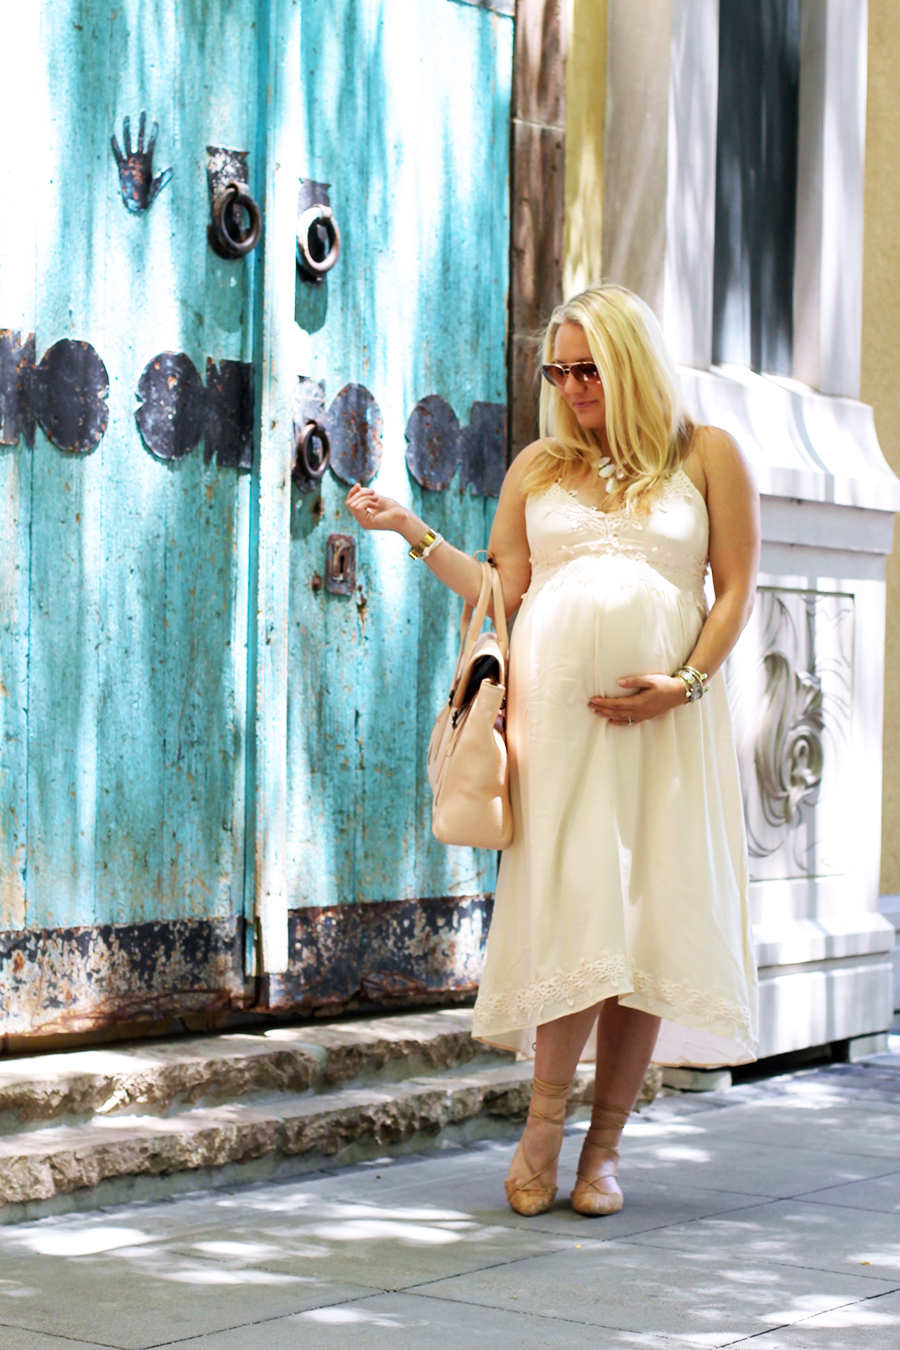 Forever 21 Lace Dress-Maternity Style-Outfit Inspiration-Pregnancy Style-Have Need Want